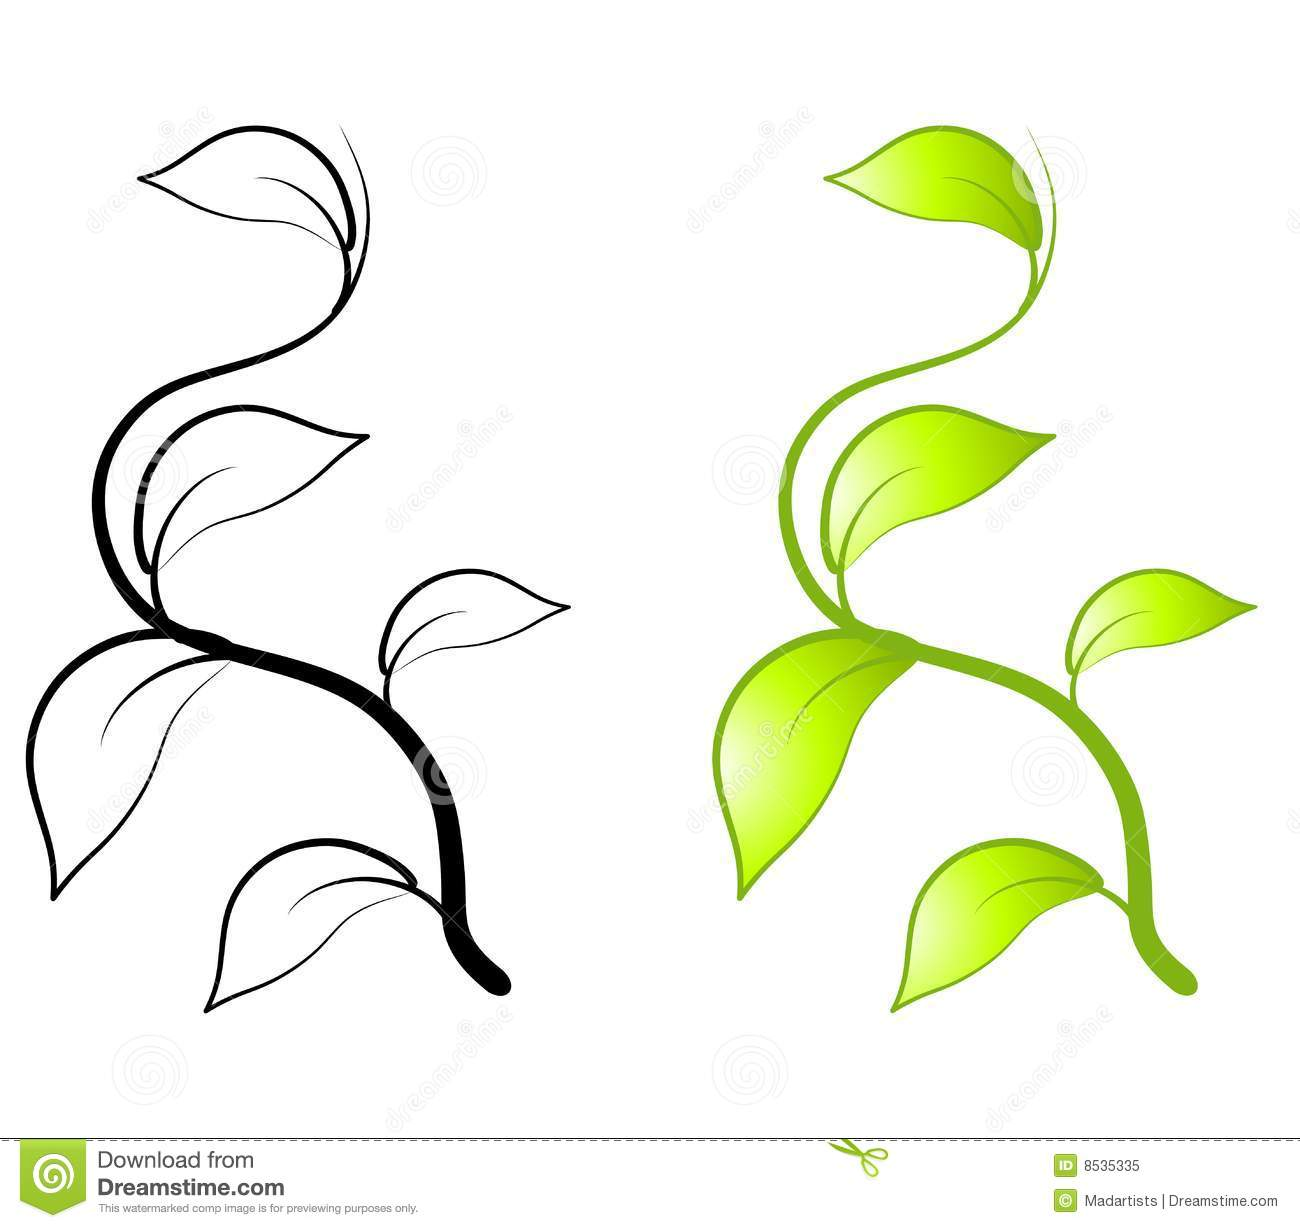 Green Leaves Vine Clip Art Stock Photos, Images, & Pictures.